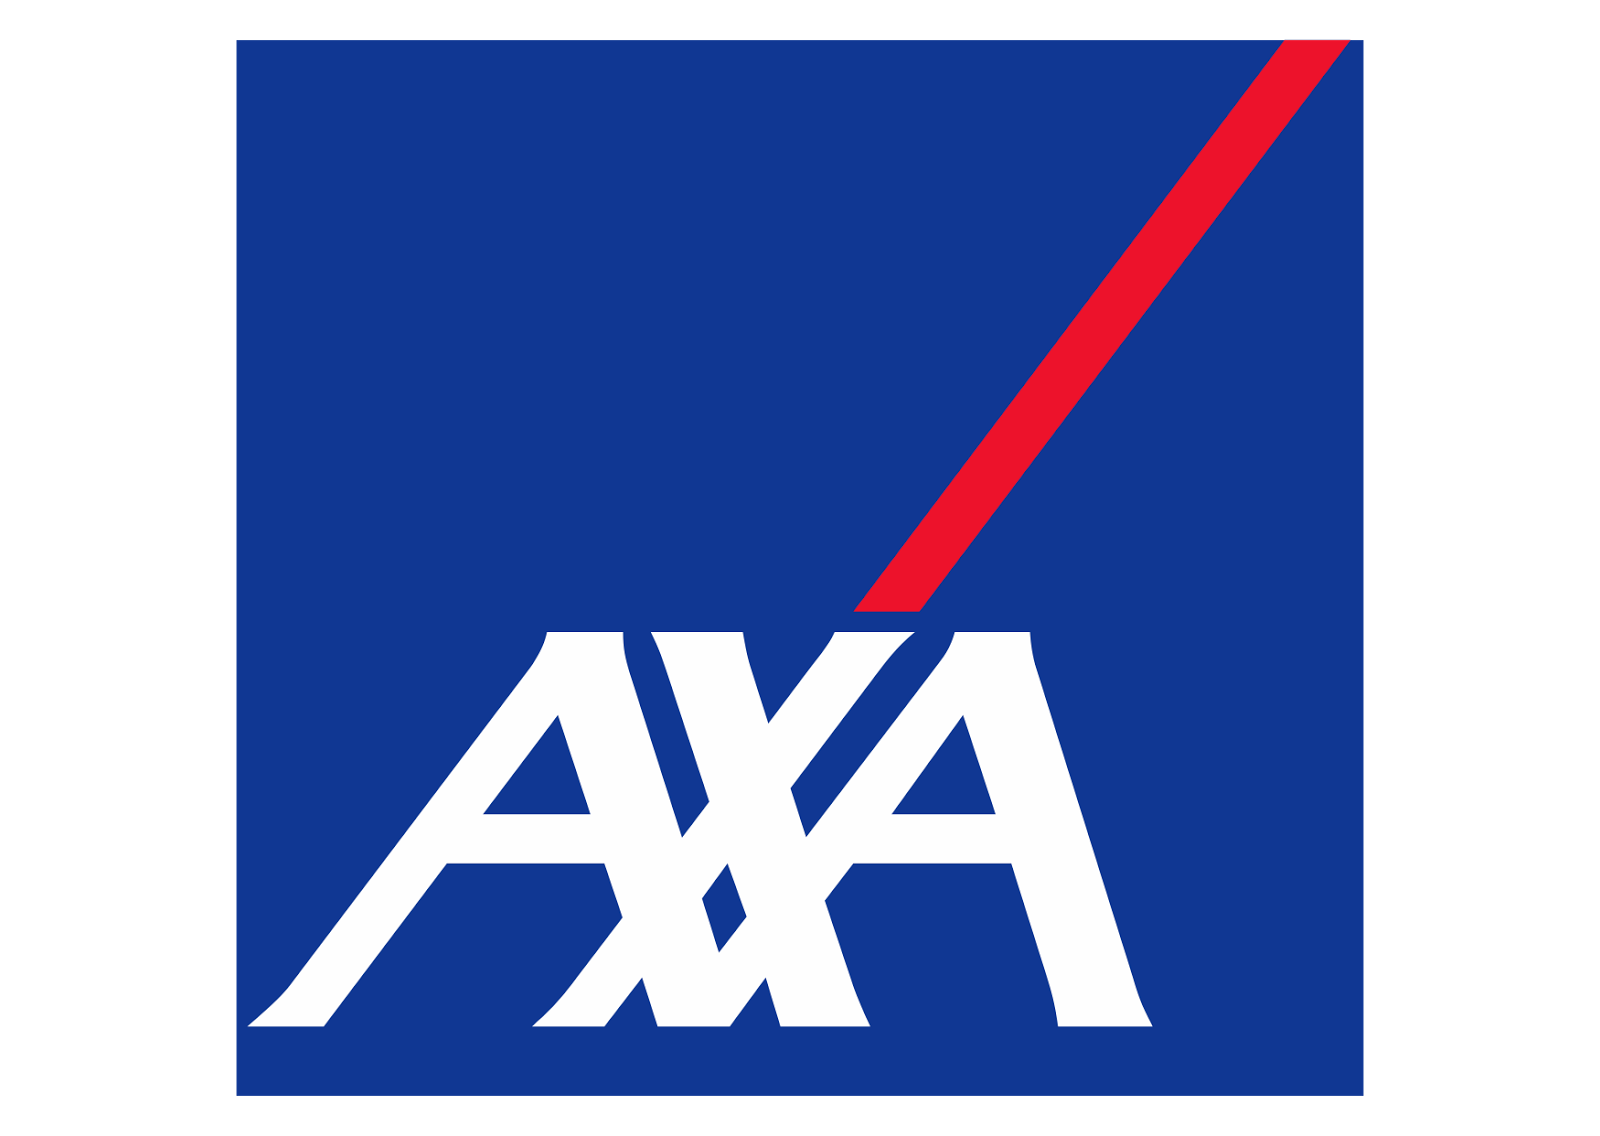 AXA Logo Wallpaper